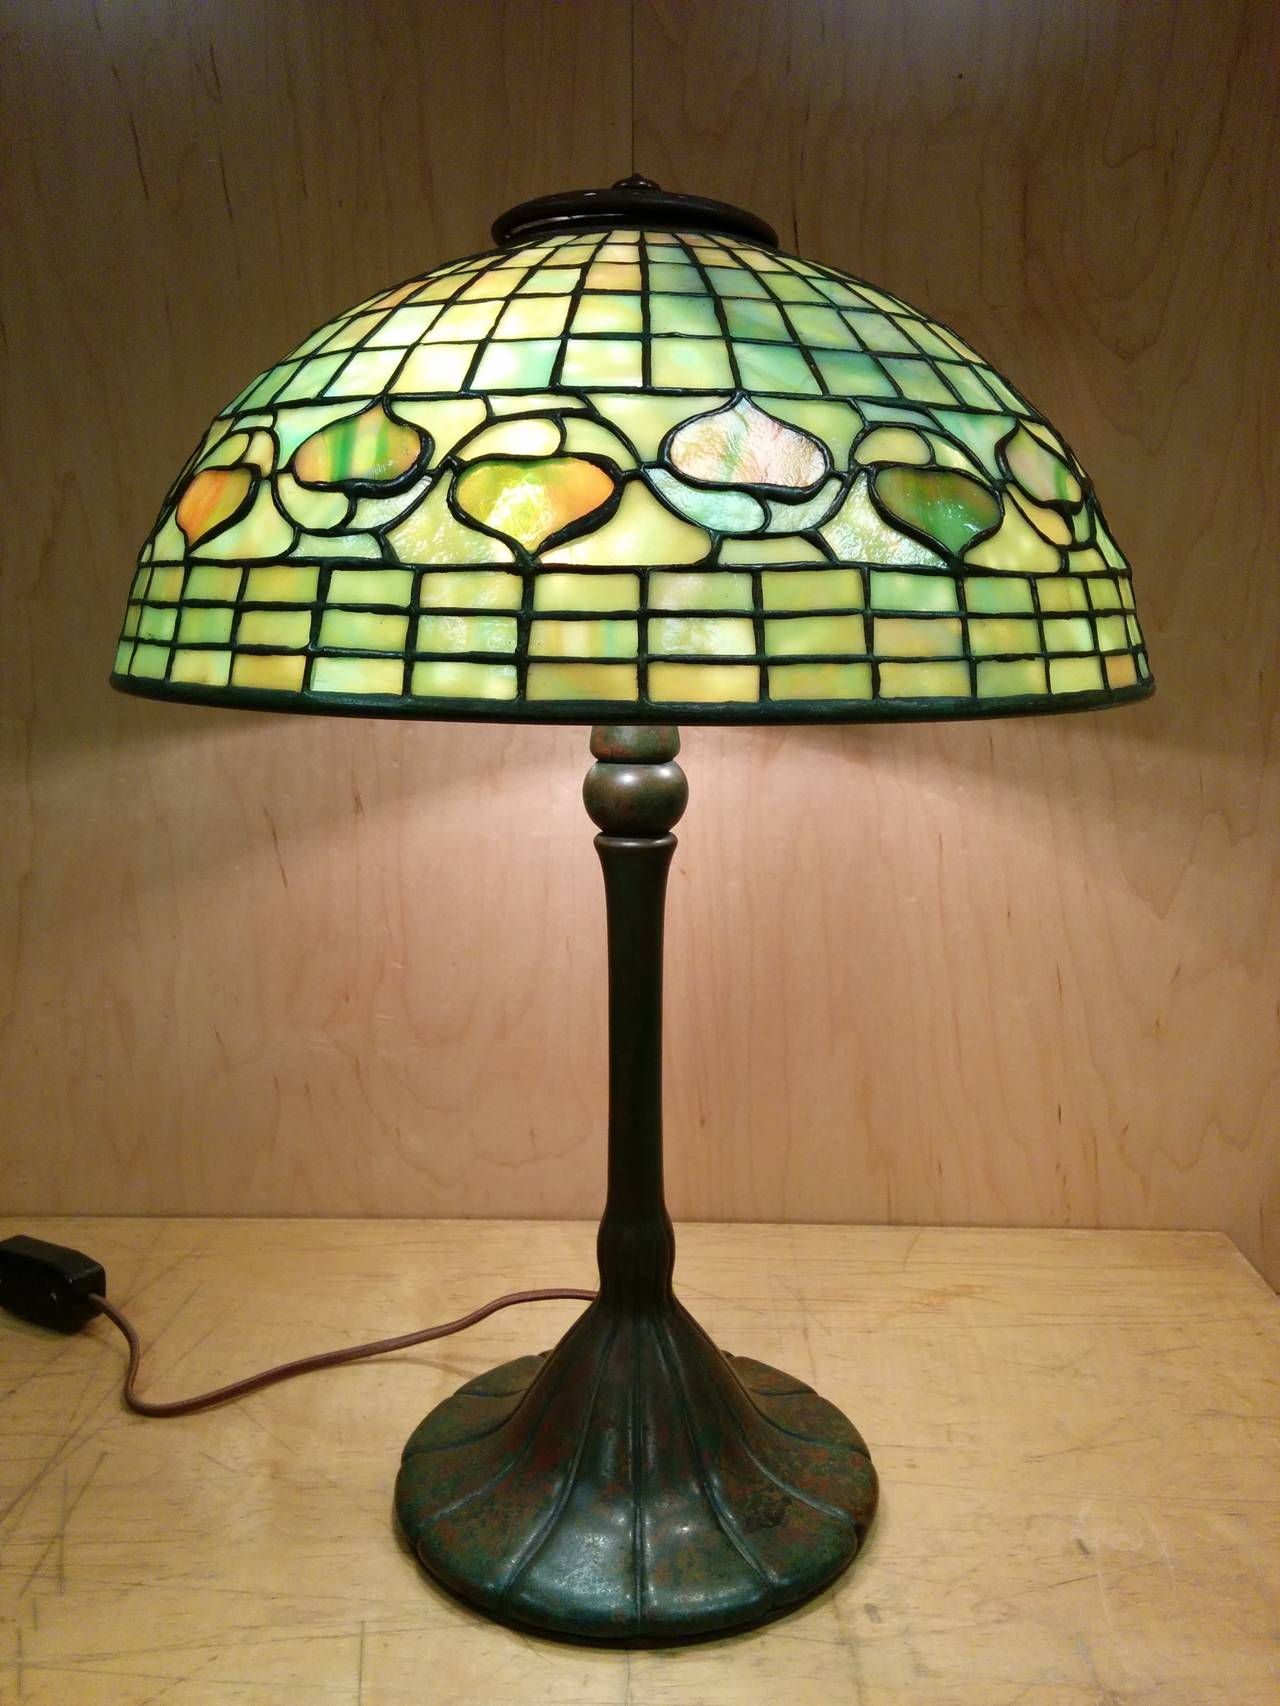 Tiffany Studios Quot Acorn Quot Leaded Glass Table Lamp At 1stdibs